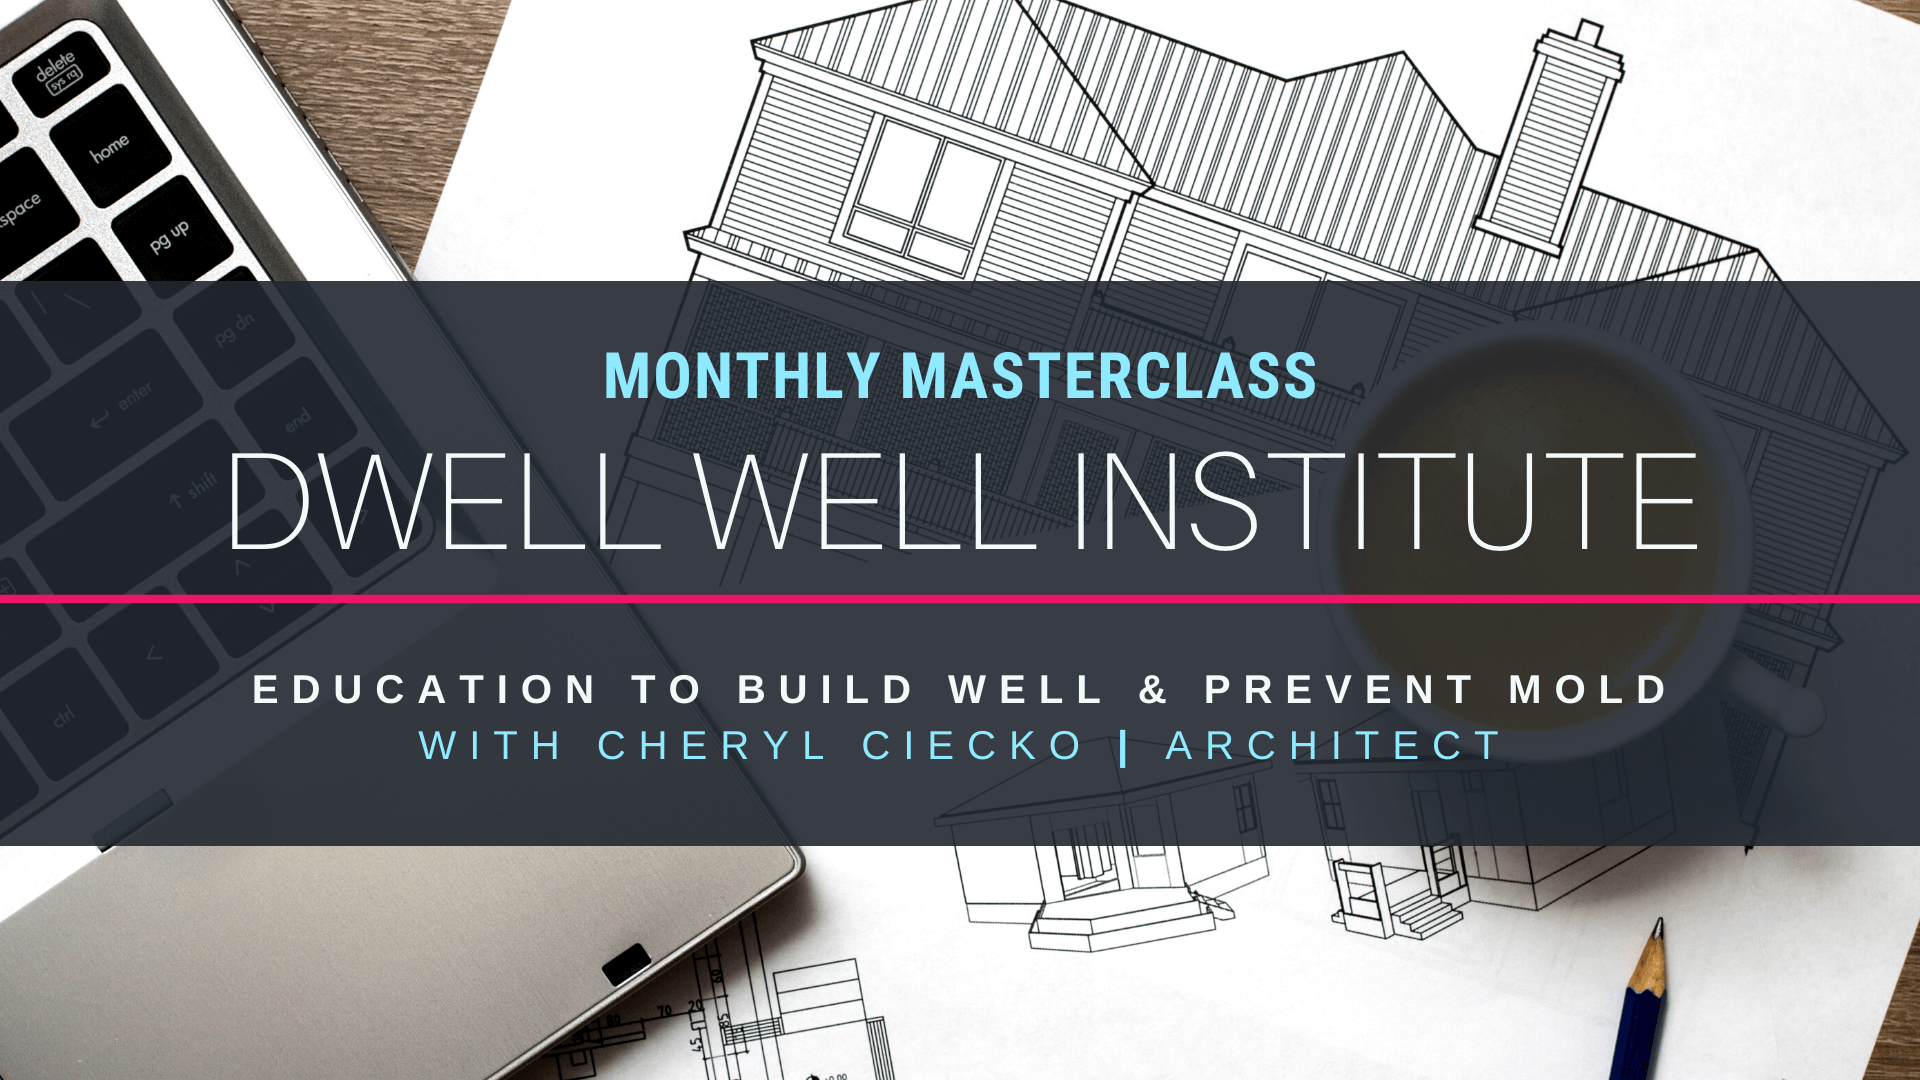 Get an expert lead masterclass every month on your most requested building and remediation topics